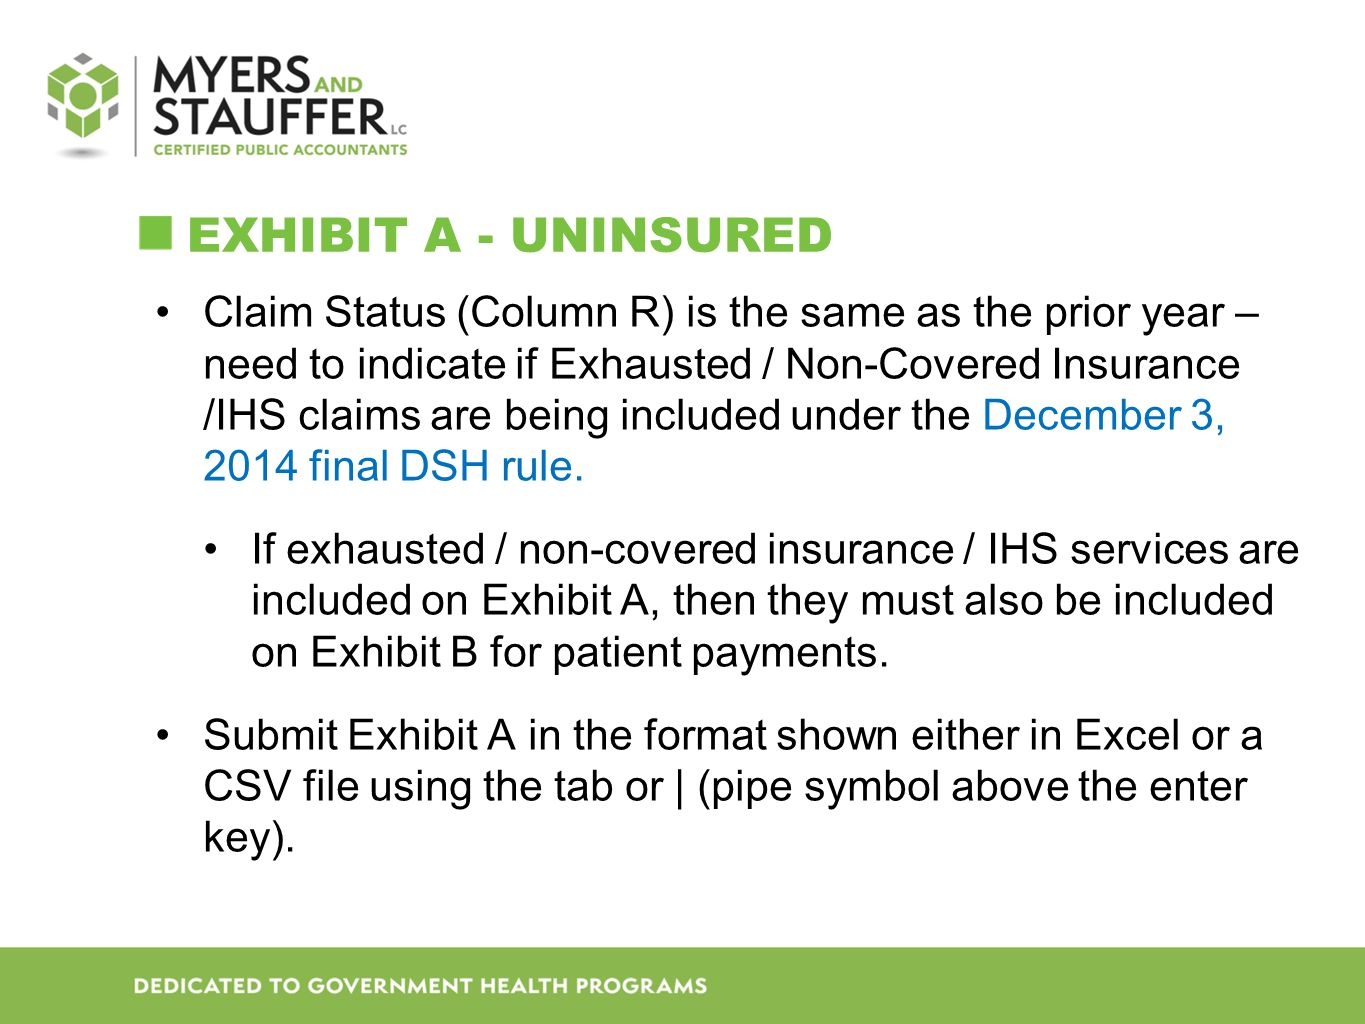 EXHIBIT A - UNINSURED Claim Status (Column R) is the same as the prior year – need to indicate if Exhausted / Non-Covered Insurance /IHS claims are being included under the December 3, 2014 final DSH rule.